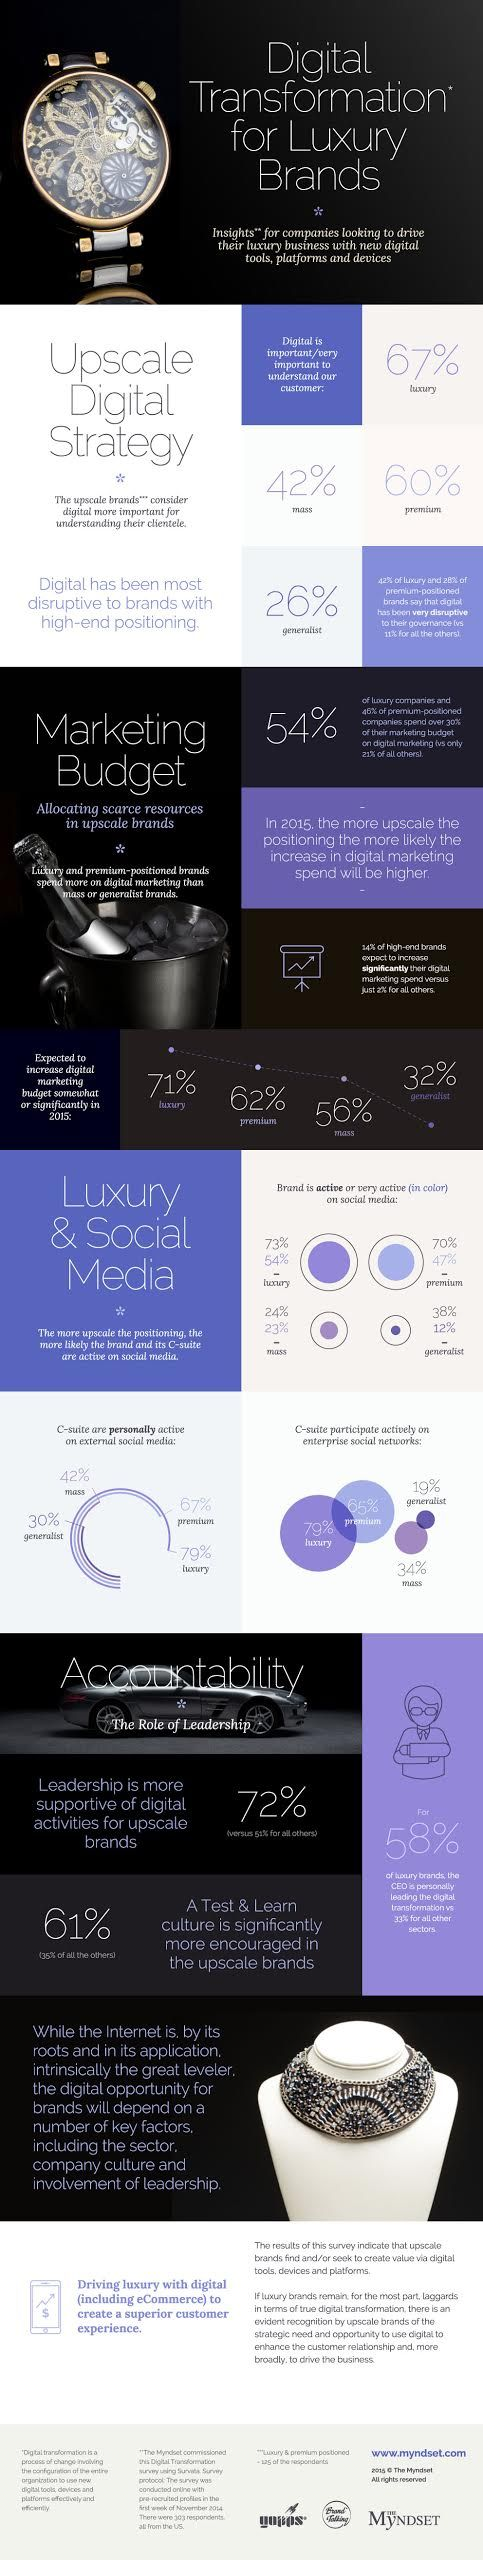 digital transformation for luxury brands v2